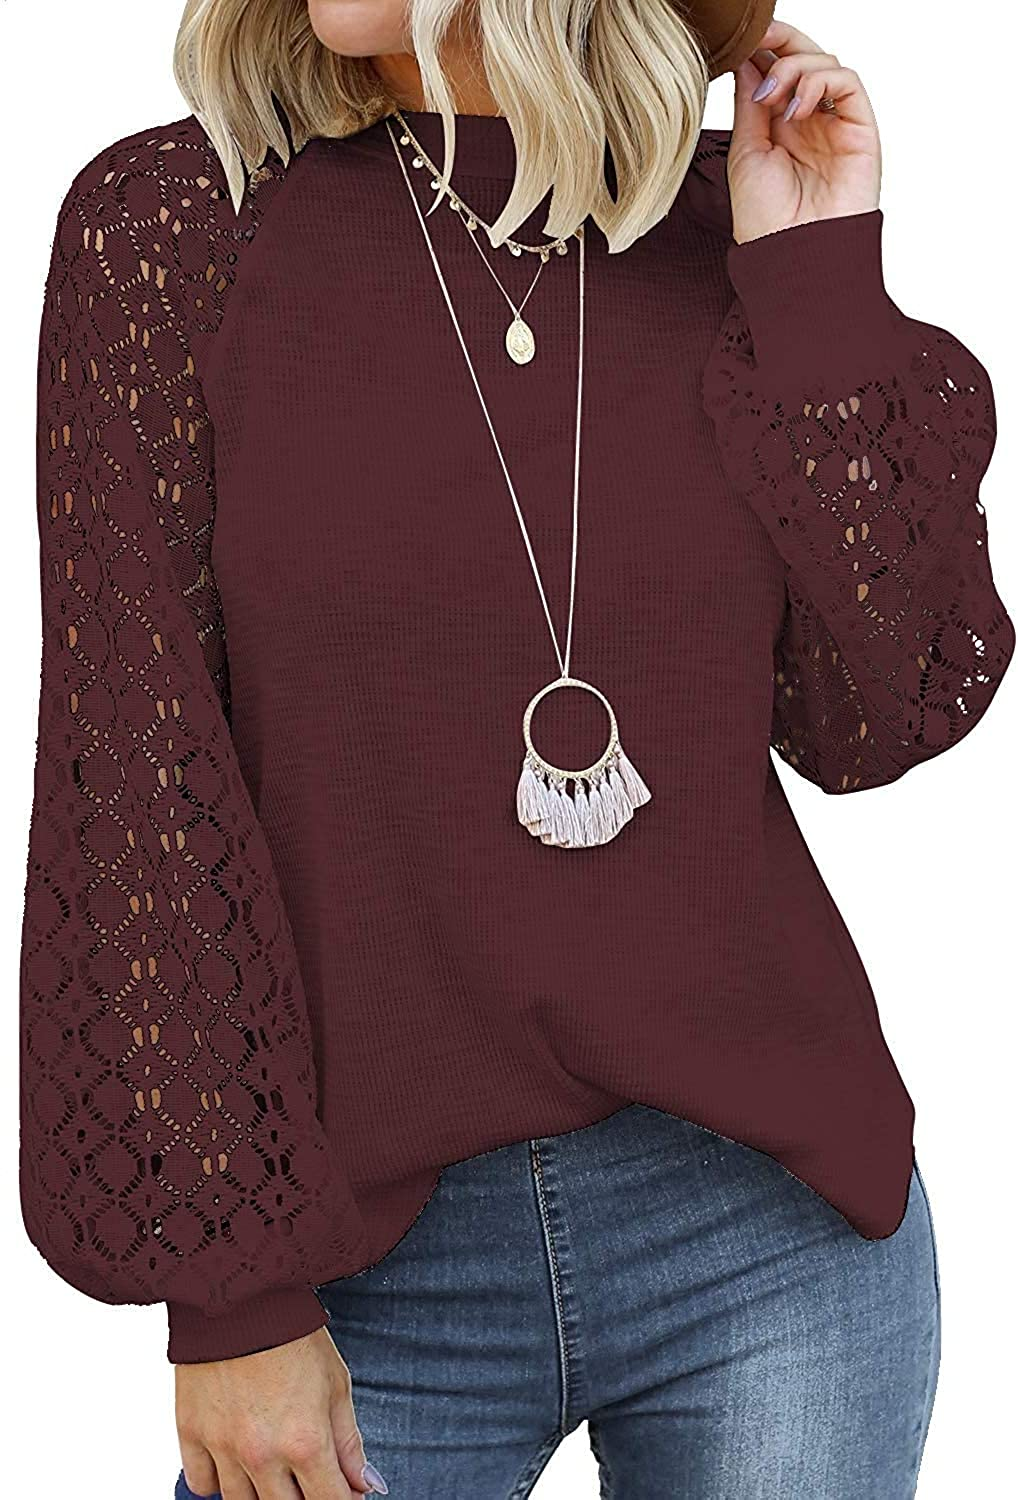 Women's Lace Long Sleeve Tops Fall Casual Loose Blouses T-Shirts Tops